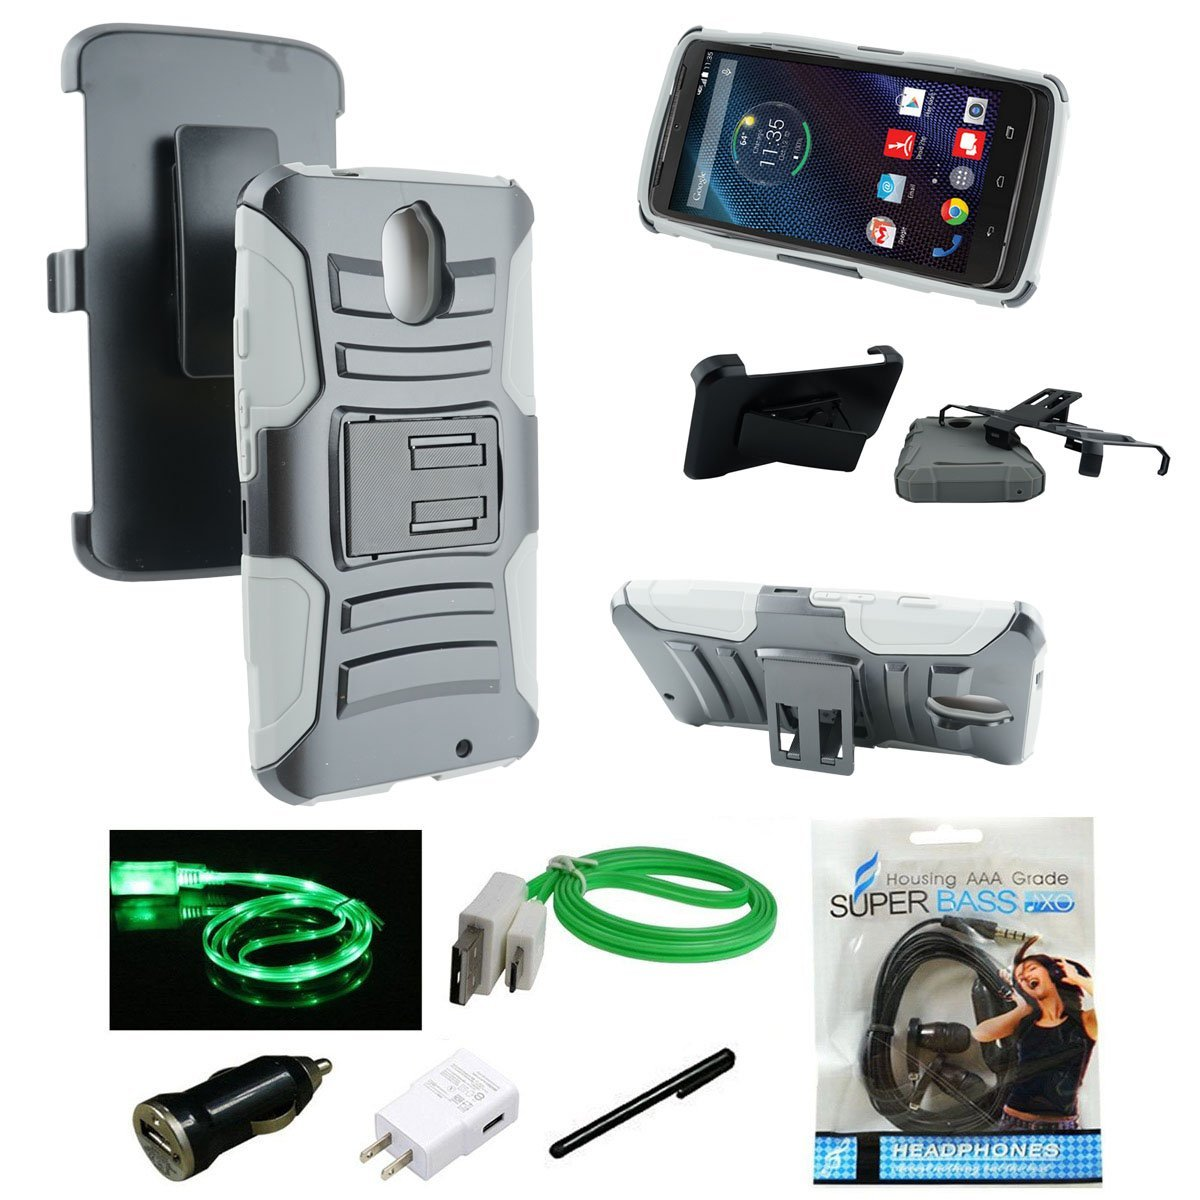 Motorola Droid Turbo 2 Case, Mstechcorp Combo Rugged Shell Cover Holster with Built-in Kickstand and Holster Locking Belt Clip, For Droid Kinzie XT1585 Verizon - Includes Accessories (H Gray)